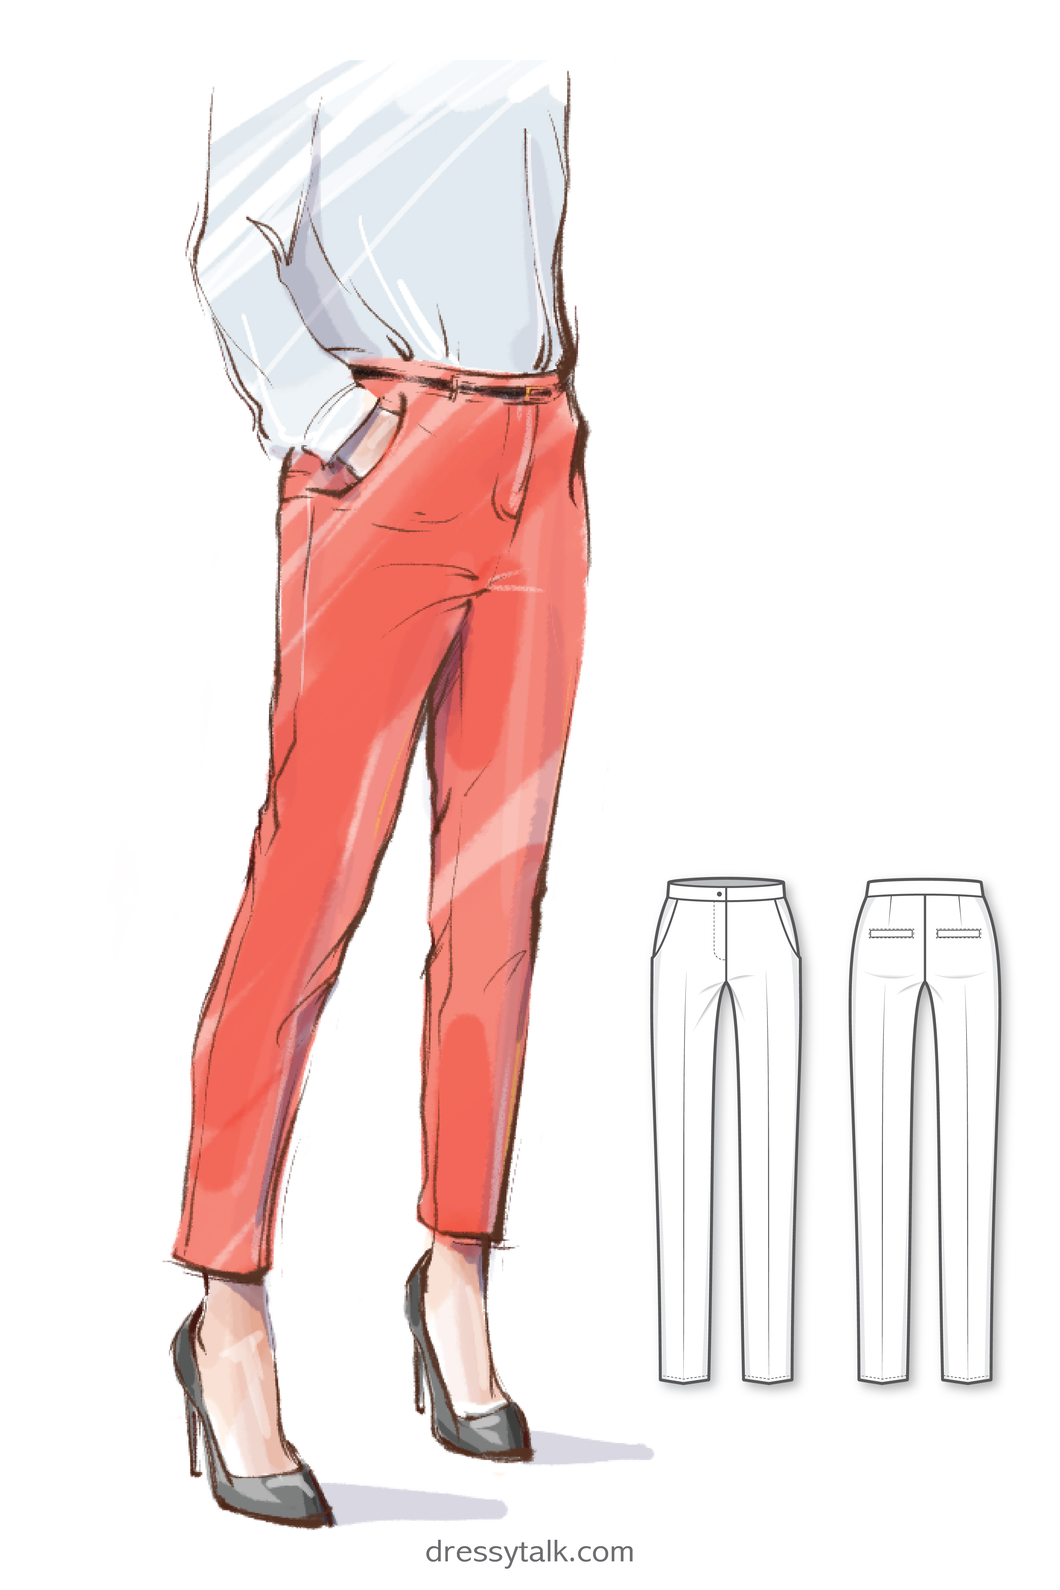 Basic Slim Pencil Pants #5202